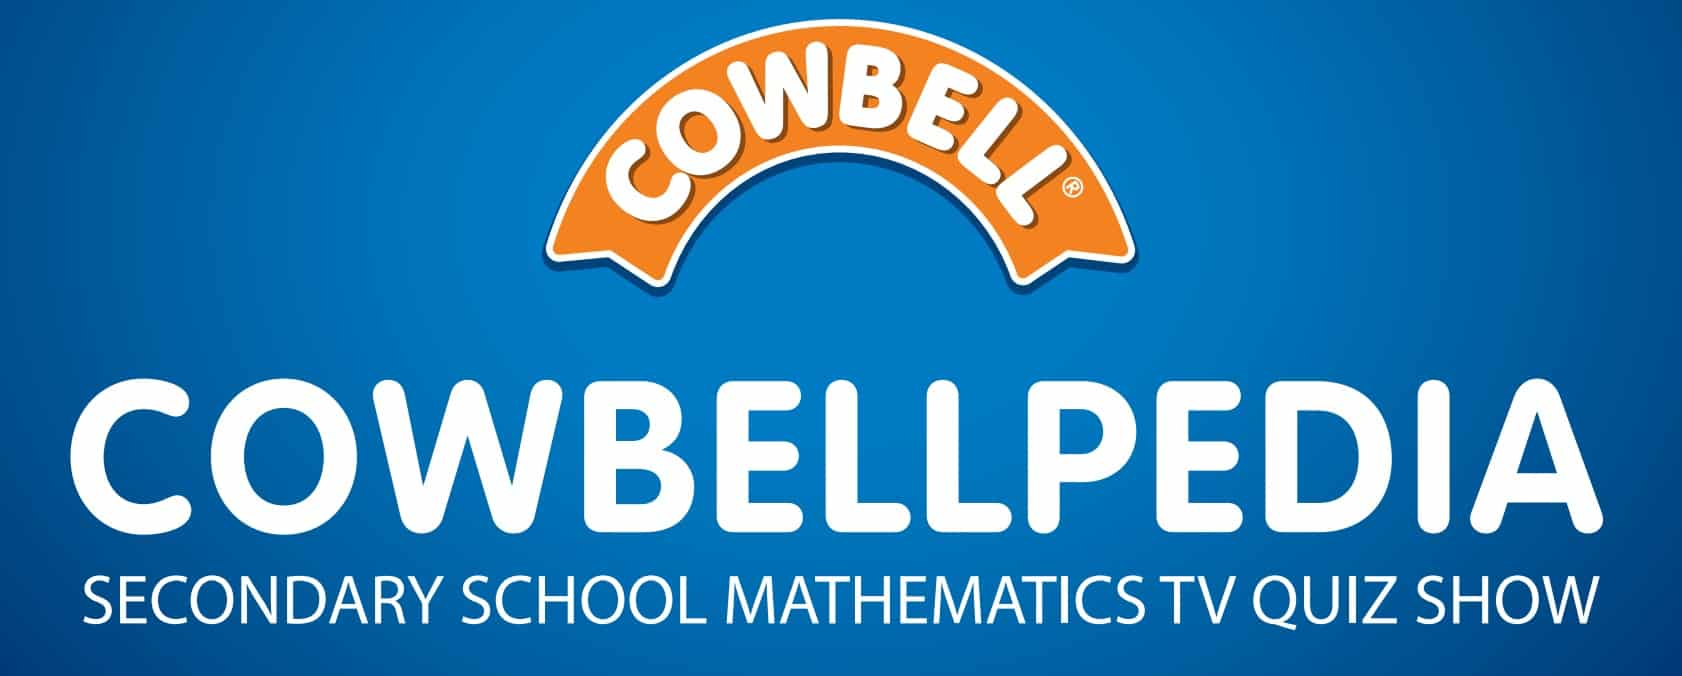 Cowbellpedia Past Questions and Answers